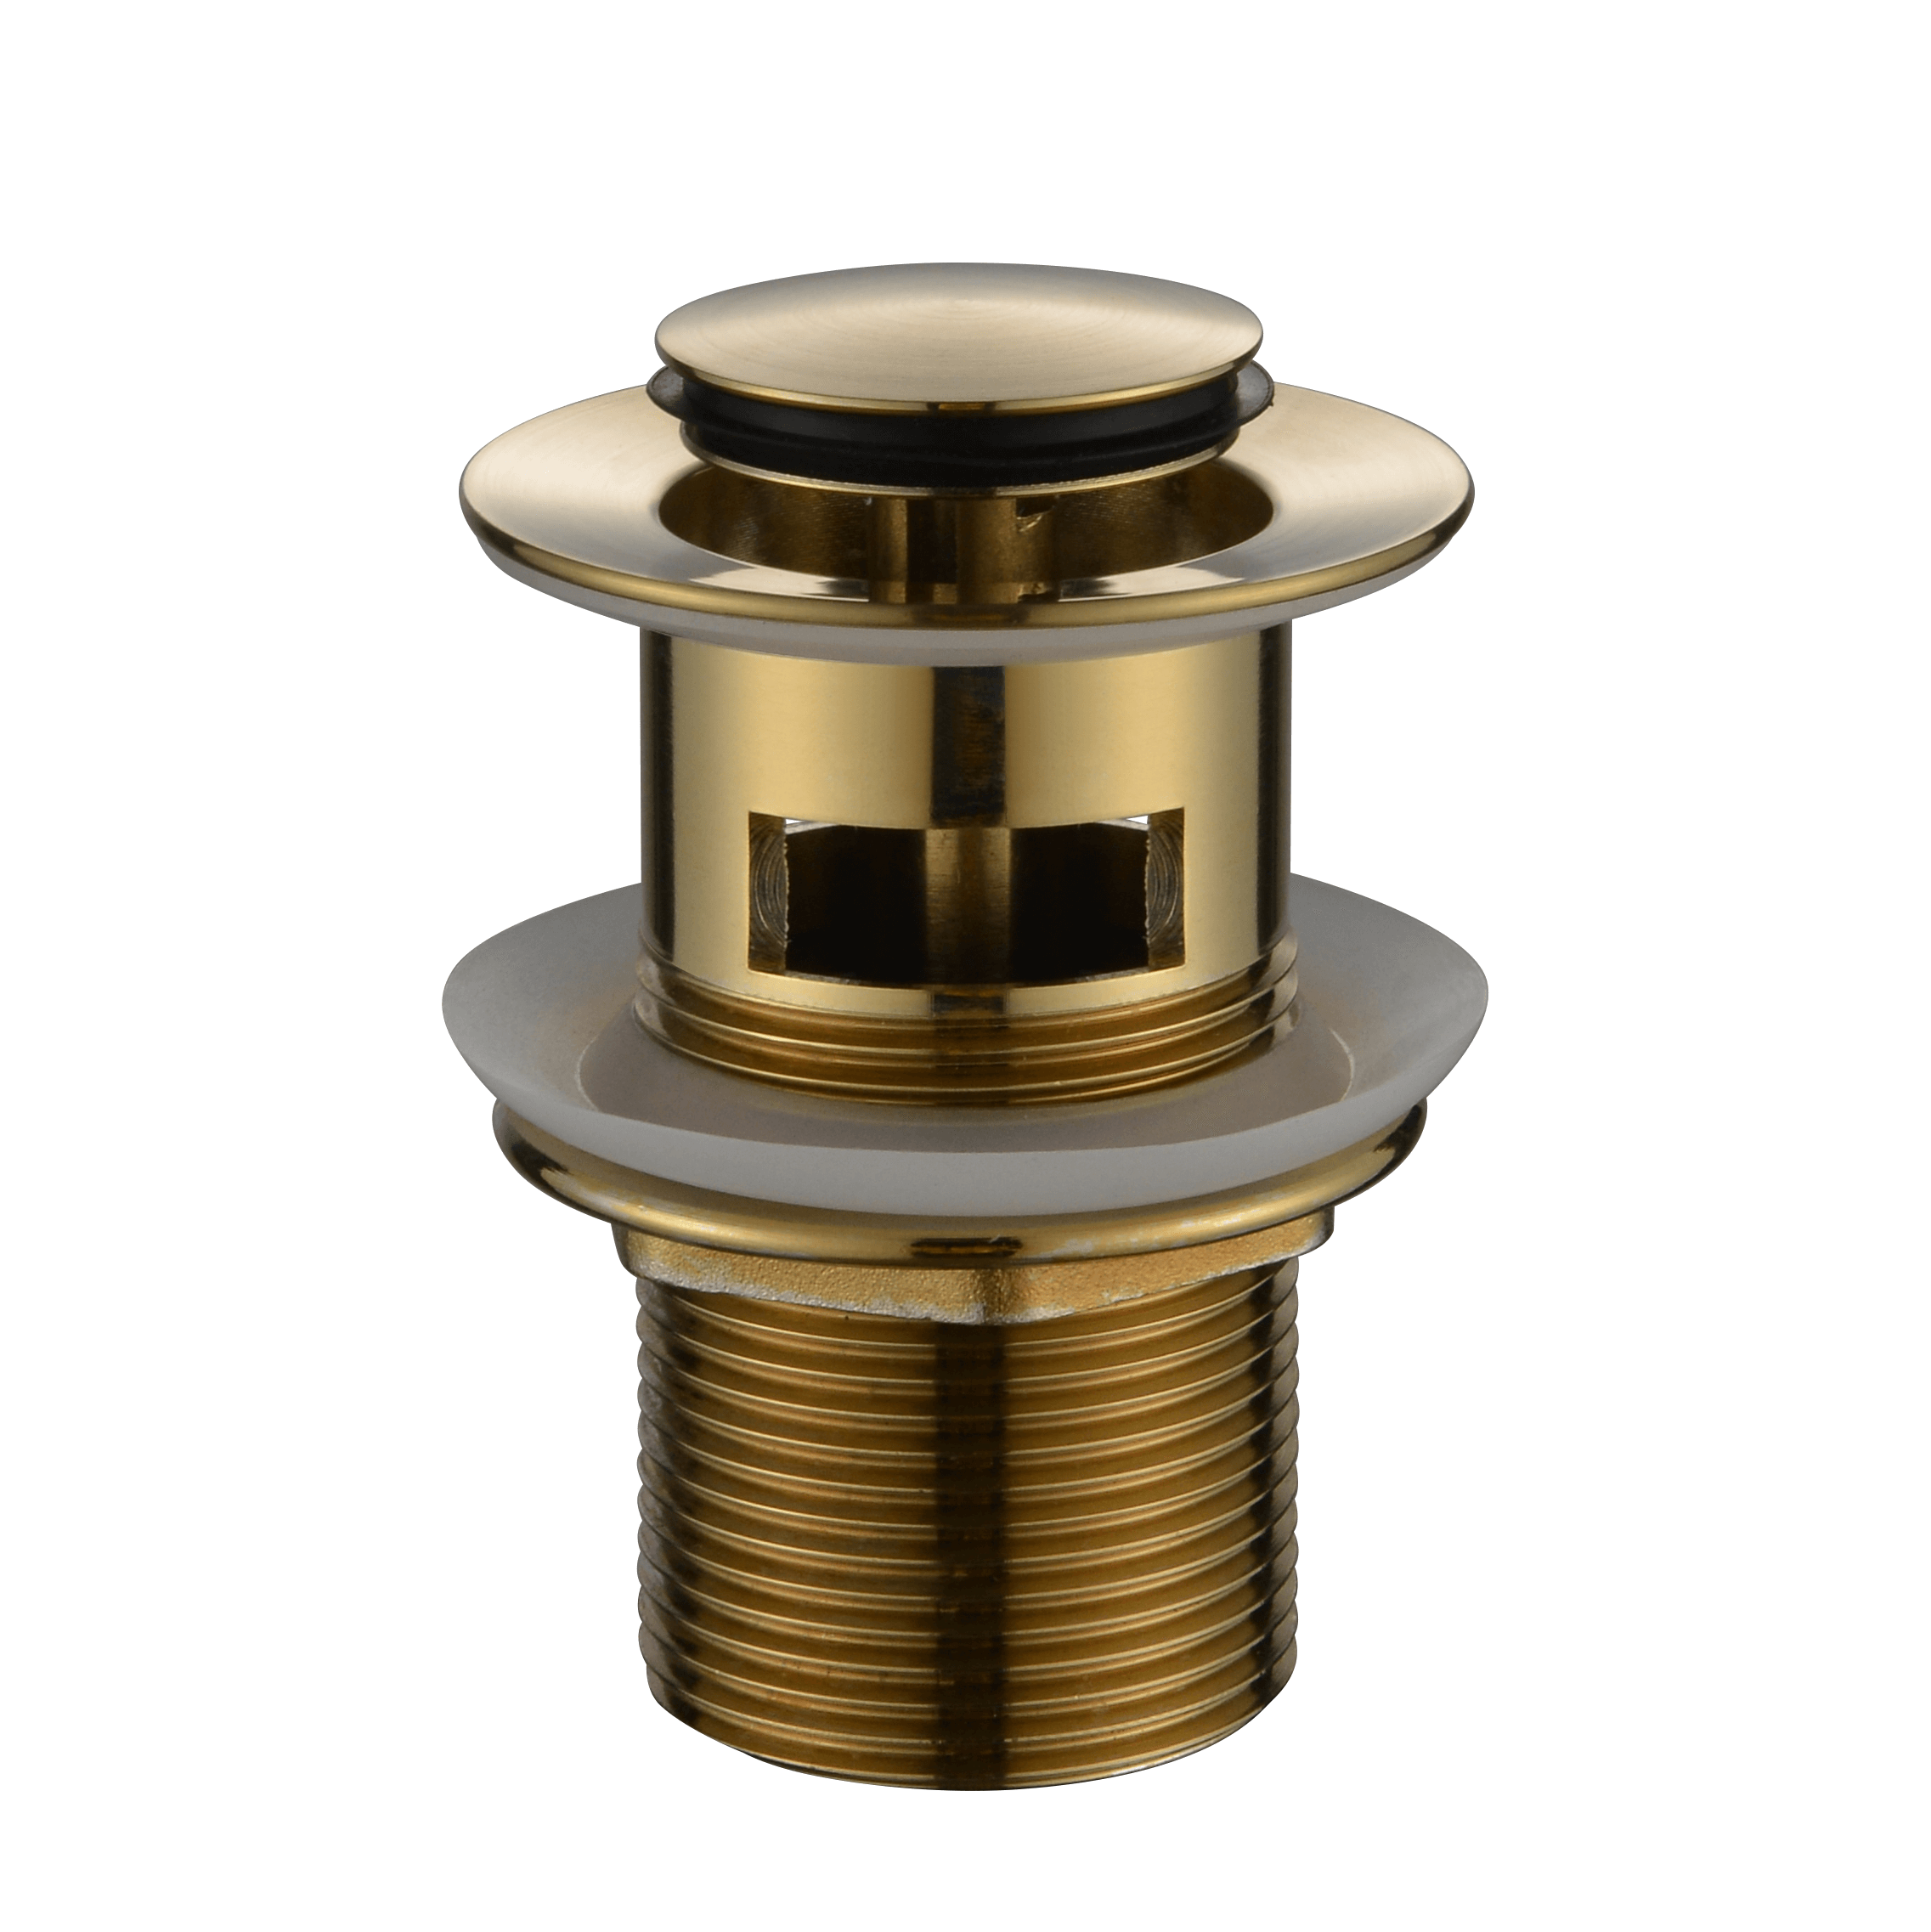 Pop-up Waste 32mm Overflow - PVD Brushed Bronze